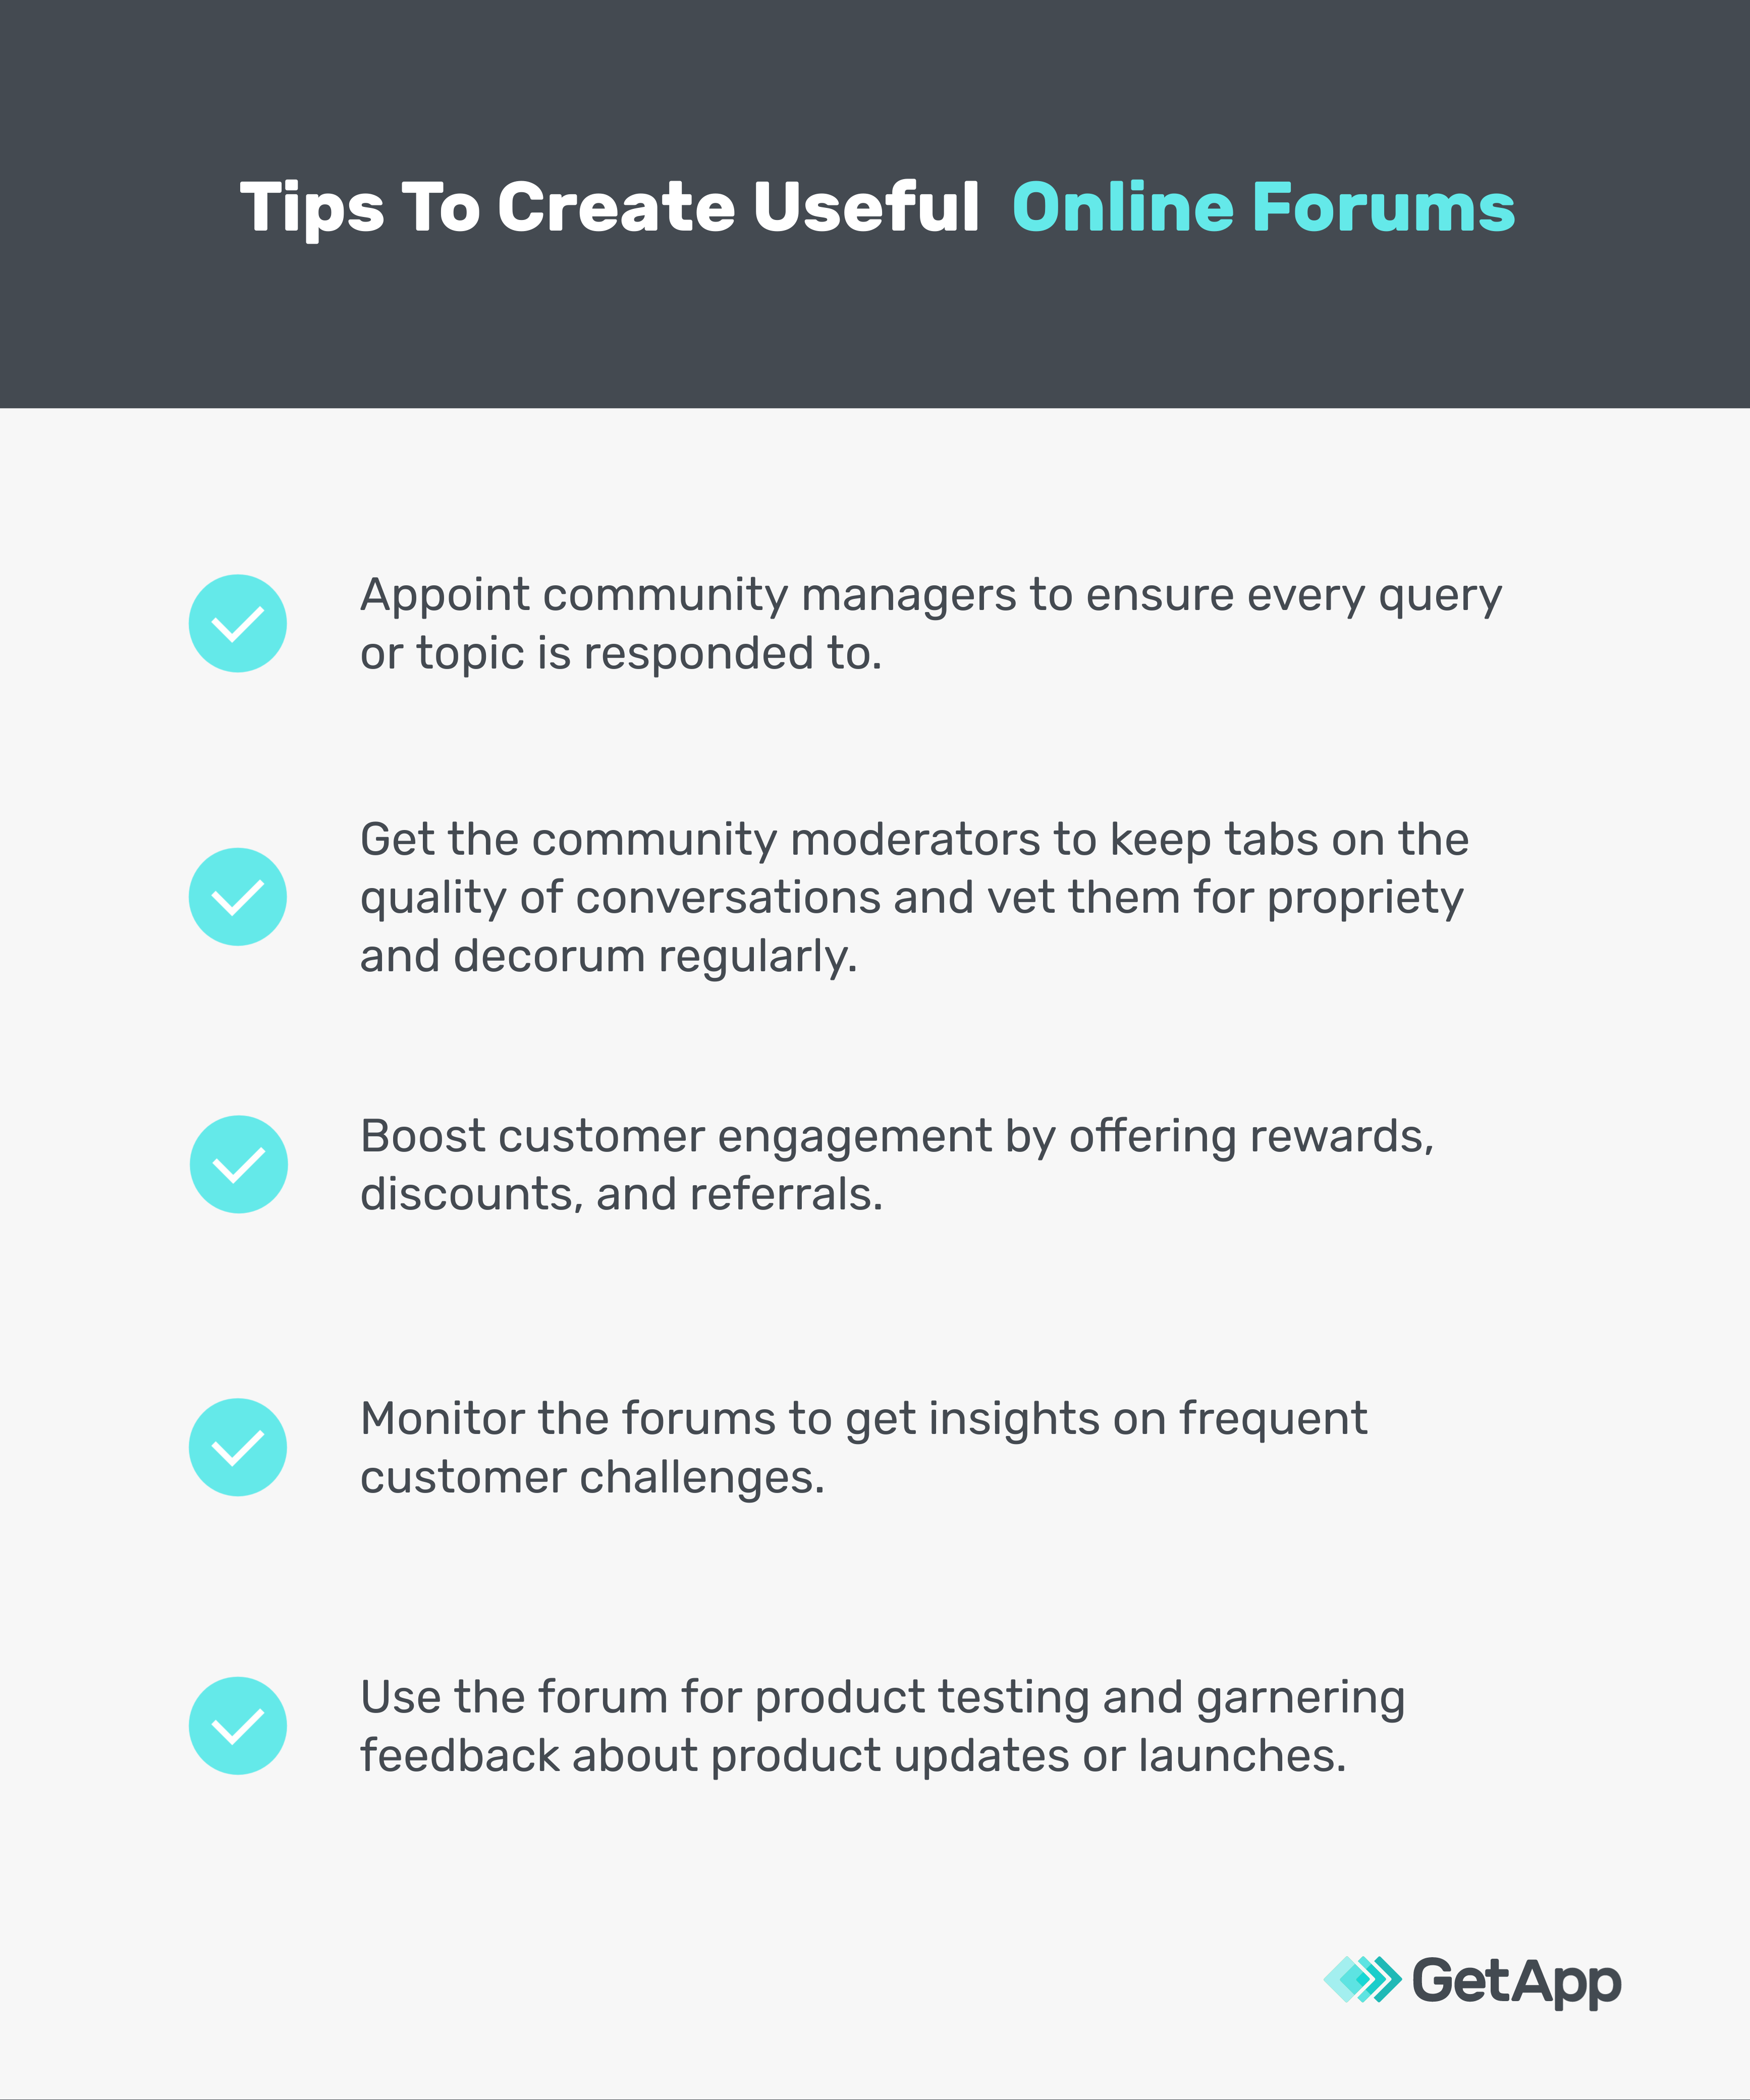 Tips to create useful online forums